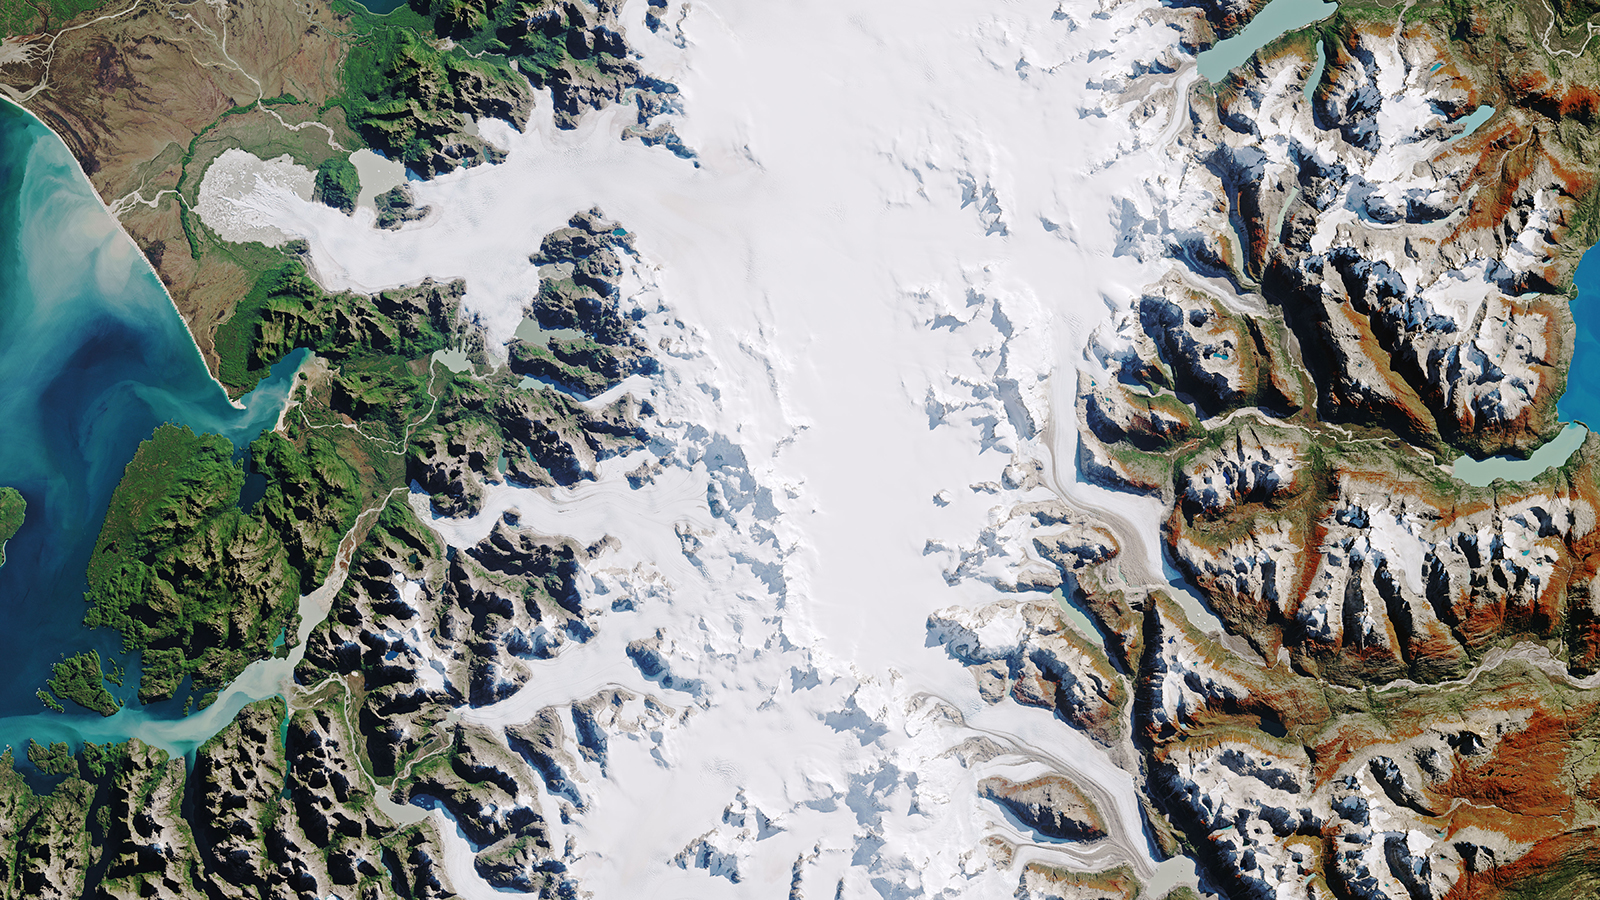 slide 2 - Melting beauty: The Patagonian icefields